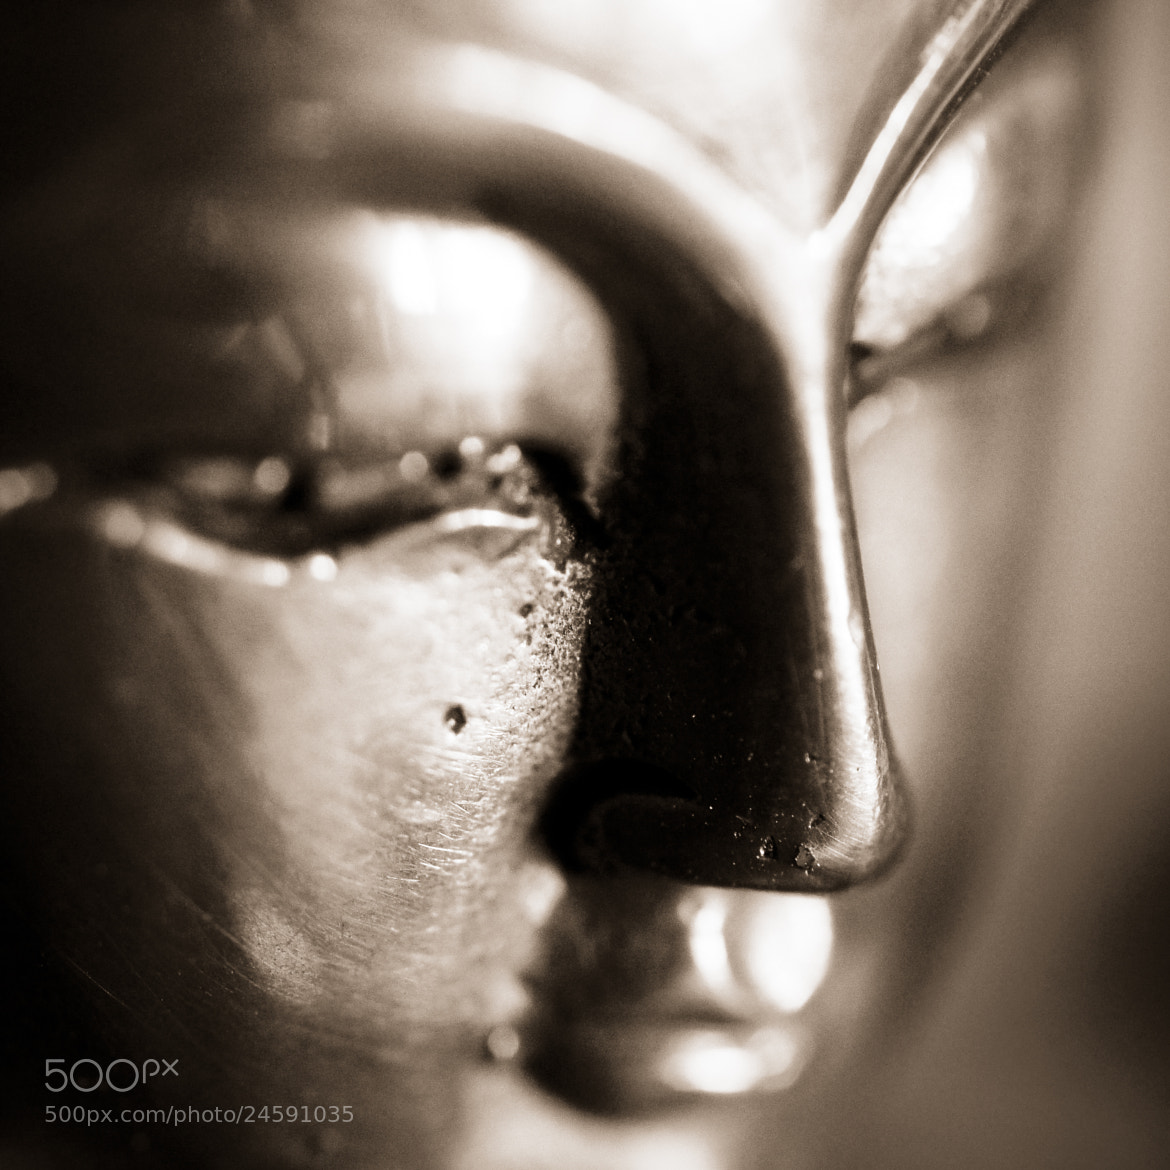 Photograph buddha 1 by Eric Vermeil on 500px